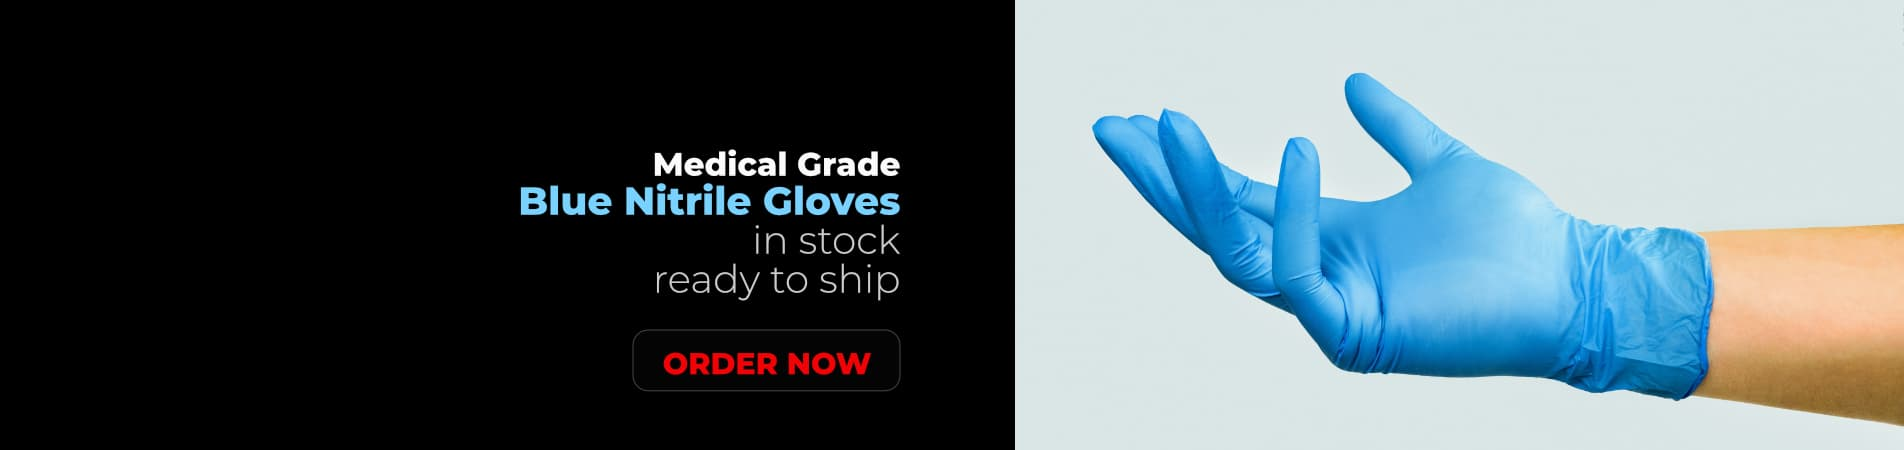 Nitrile Gloves In Stock and Ready to Ship